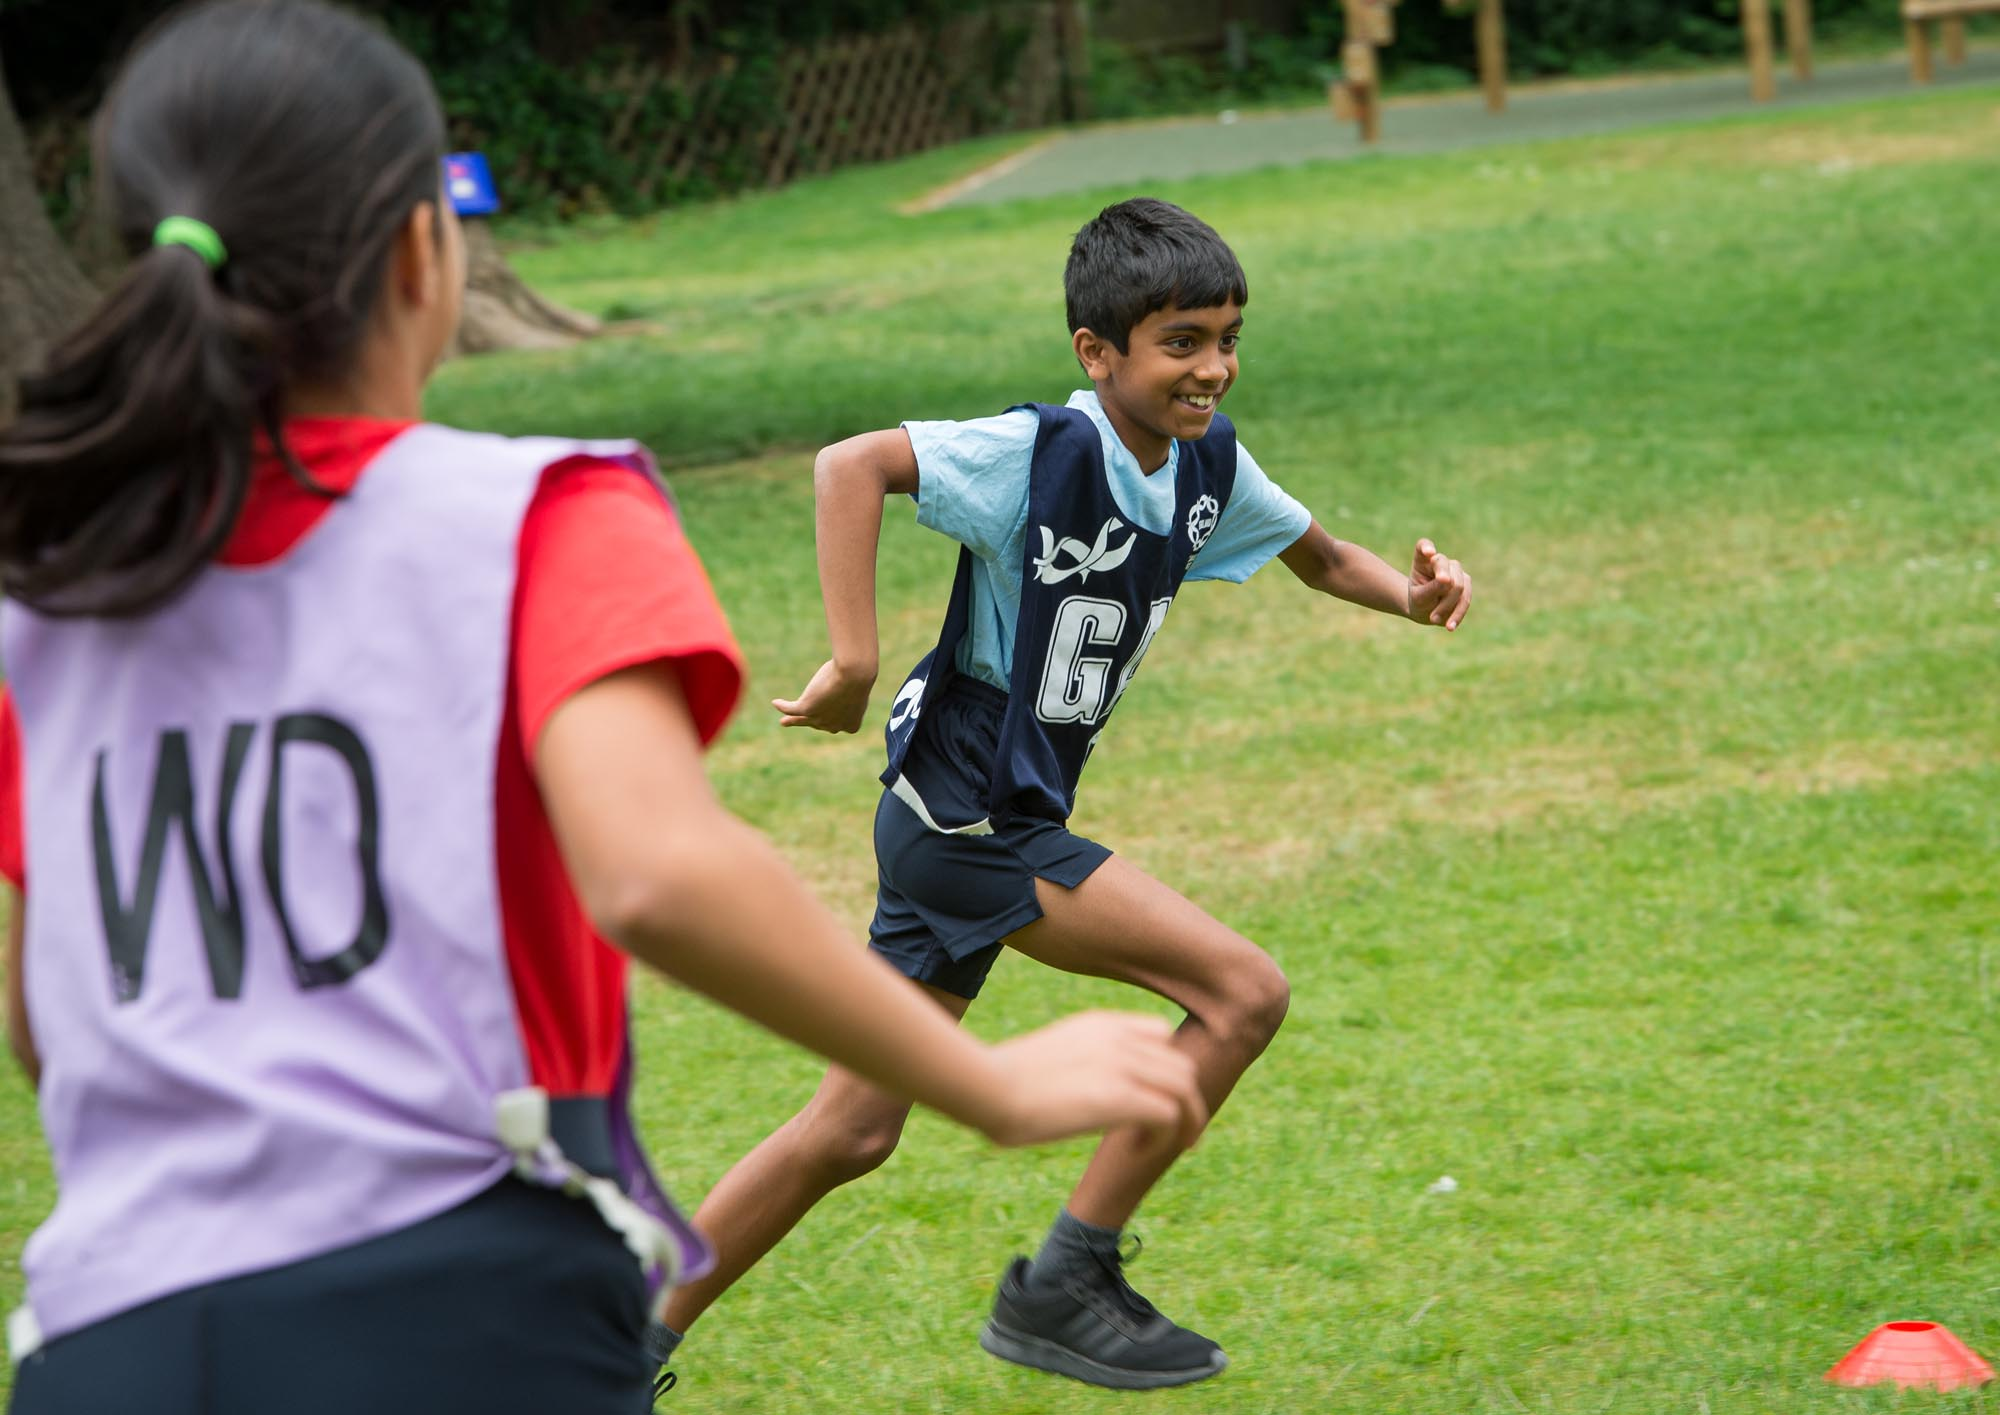 Boy taking part in running game